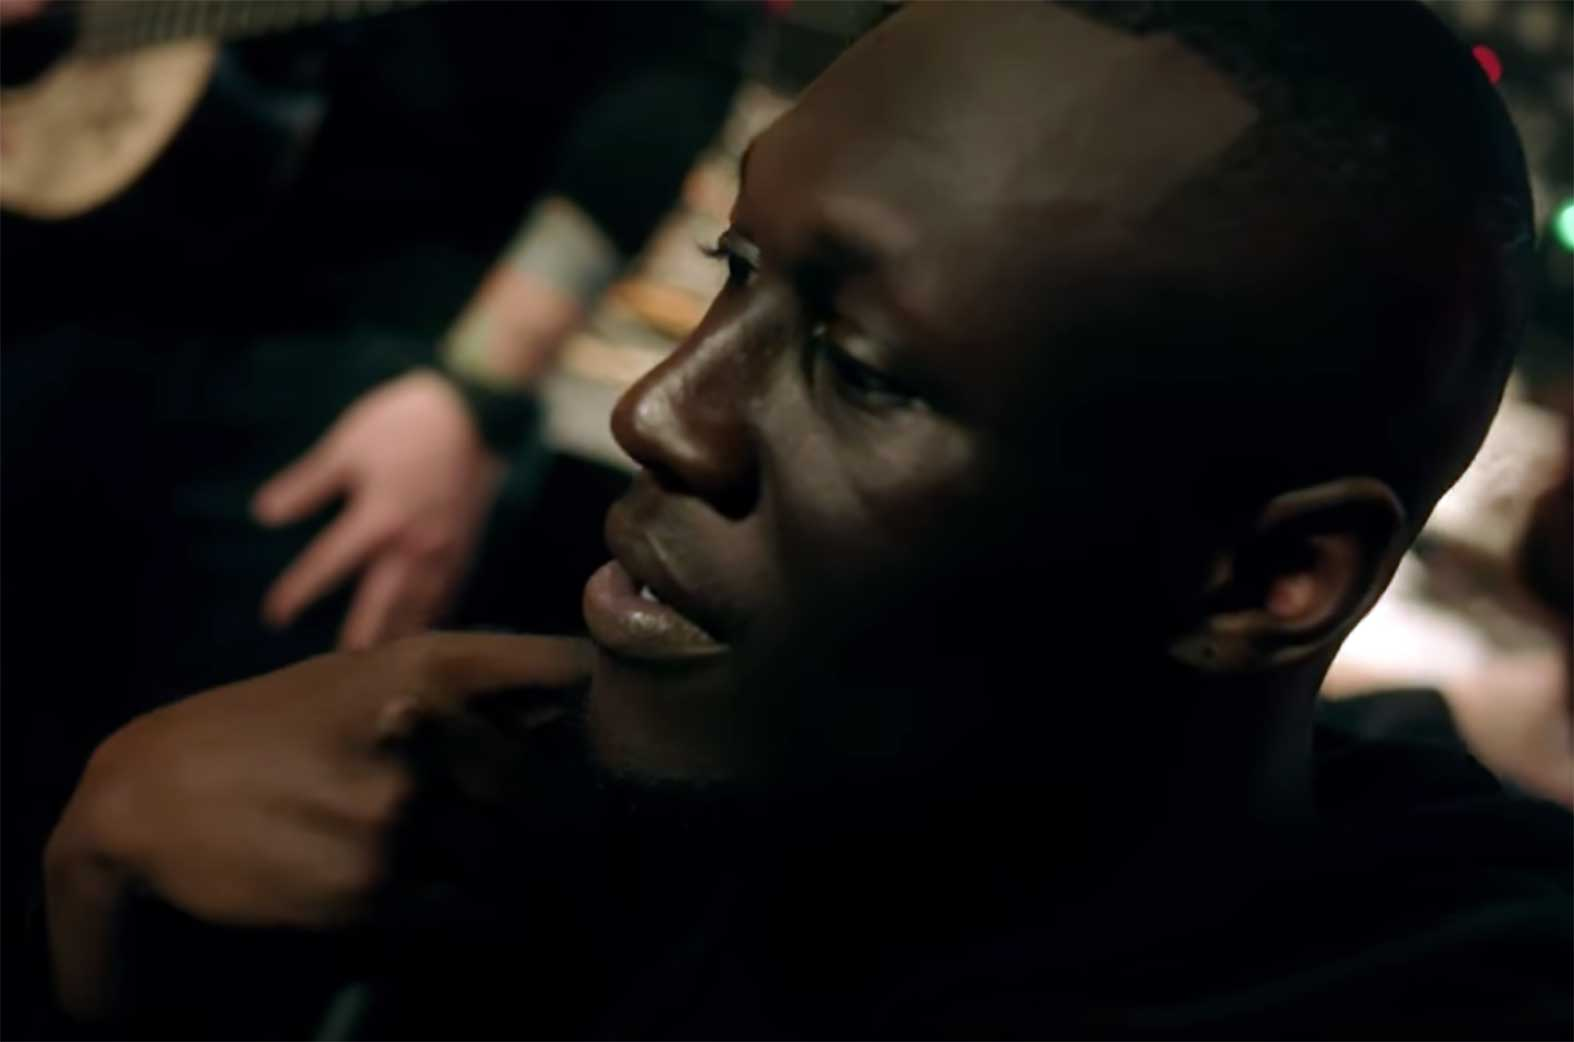 Blinded By Your Grace (Part 2) by Stormzy feat. Wretch 32, Aion Clarke & Ed Sheeran